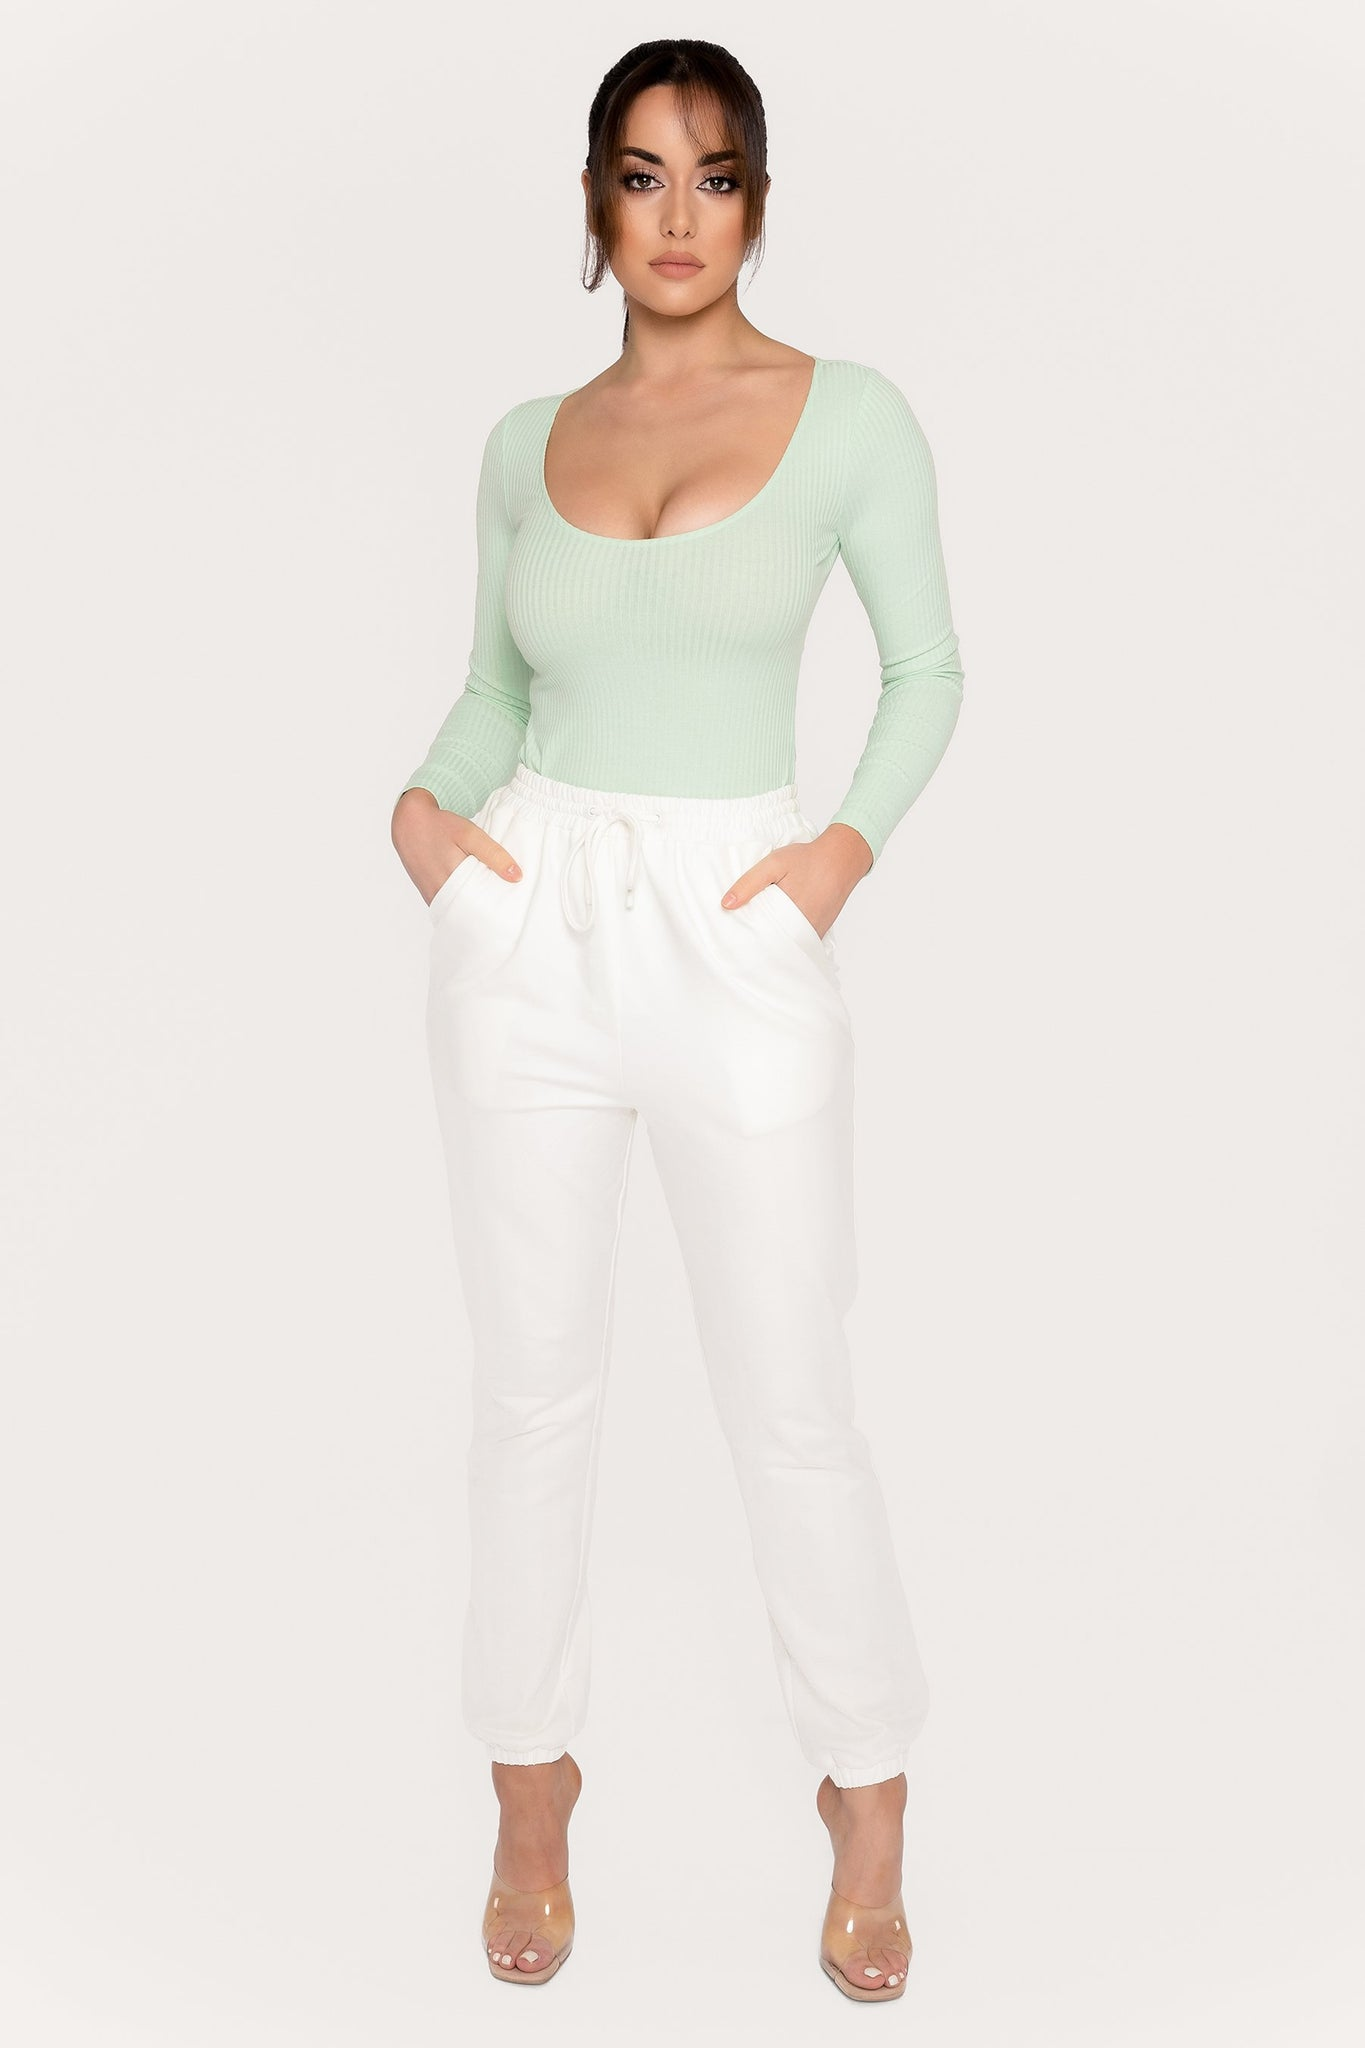 Desirae Long Sleeve Scoop Bodysuit - Mint - MESHKI